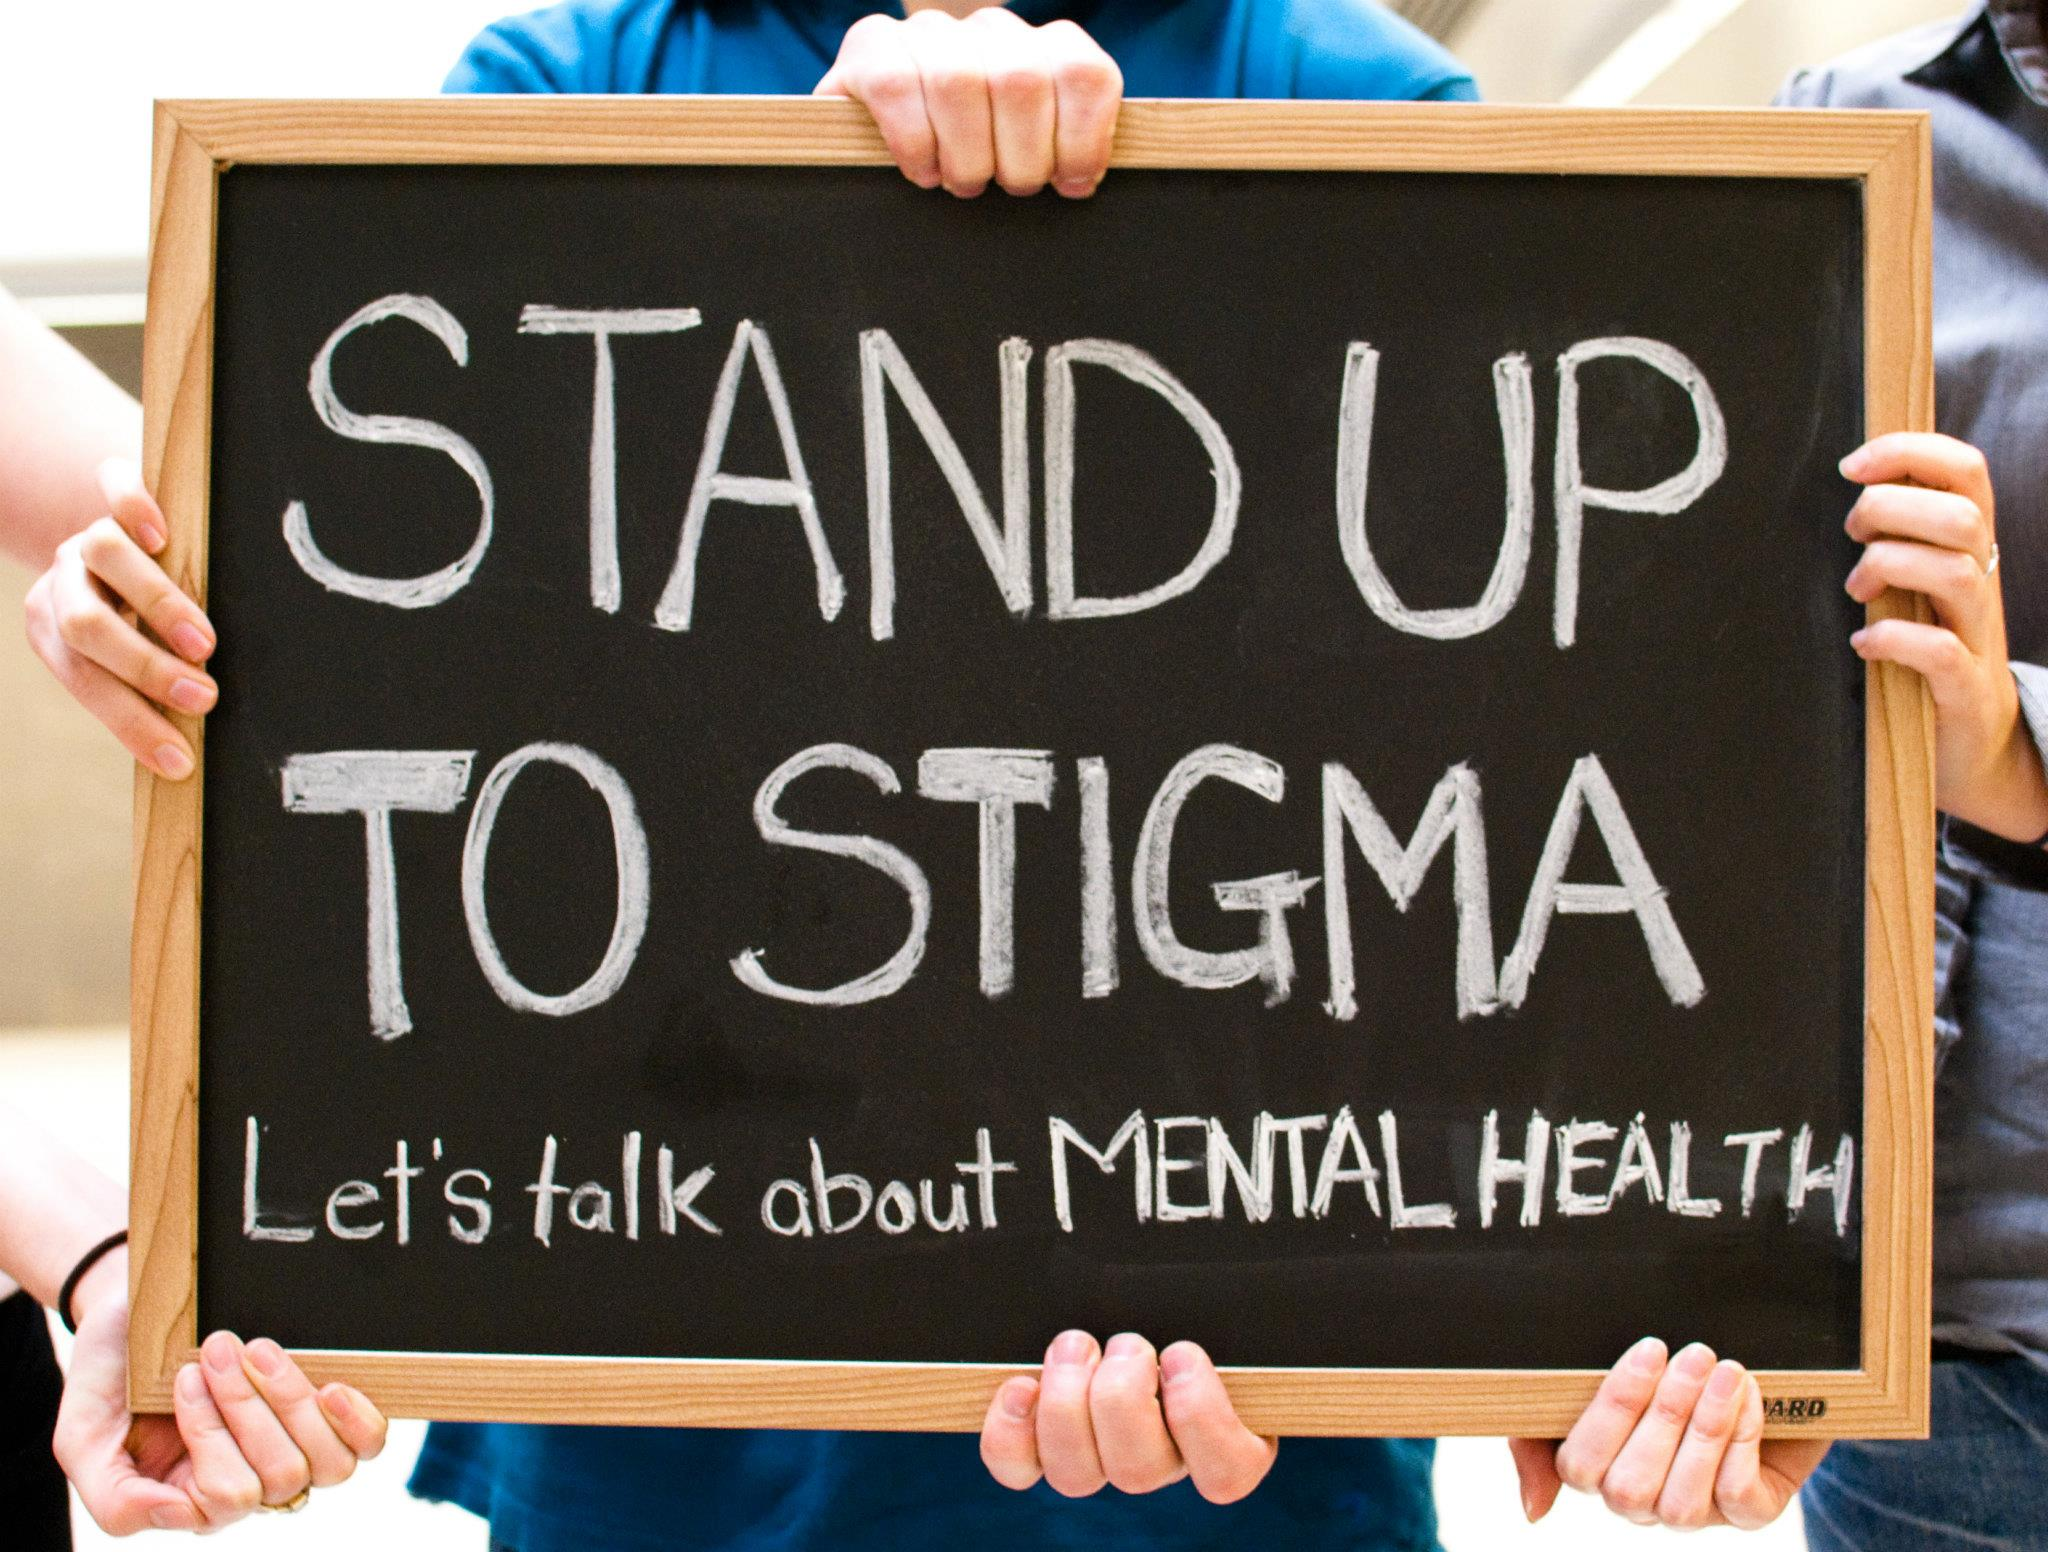 mentally healthy Mental health includes our emotional, psychological, and social well-being it affects how we think, feel, and act it also helps determine how we handle stress, relate to others, and make choices mental health is important at every stage of life, from childhood and adolescence through adulthood.